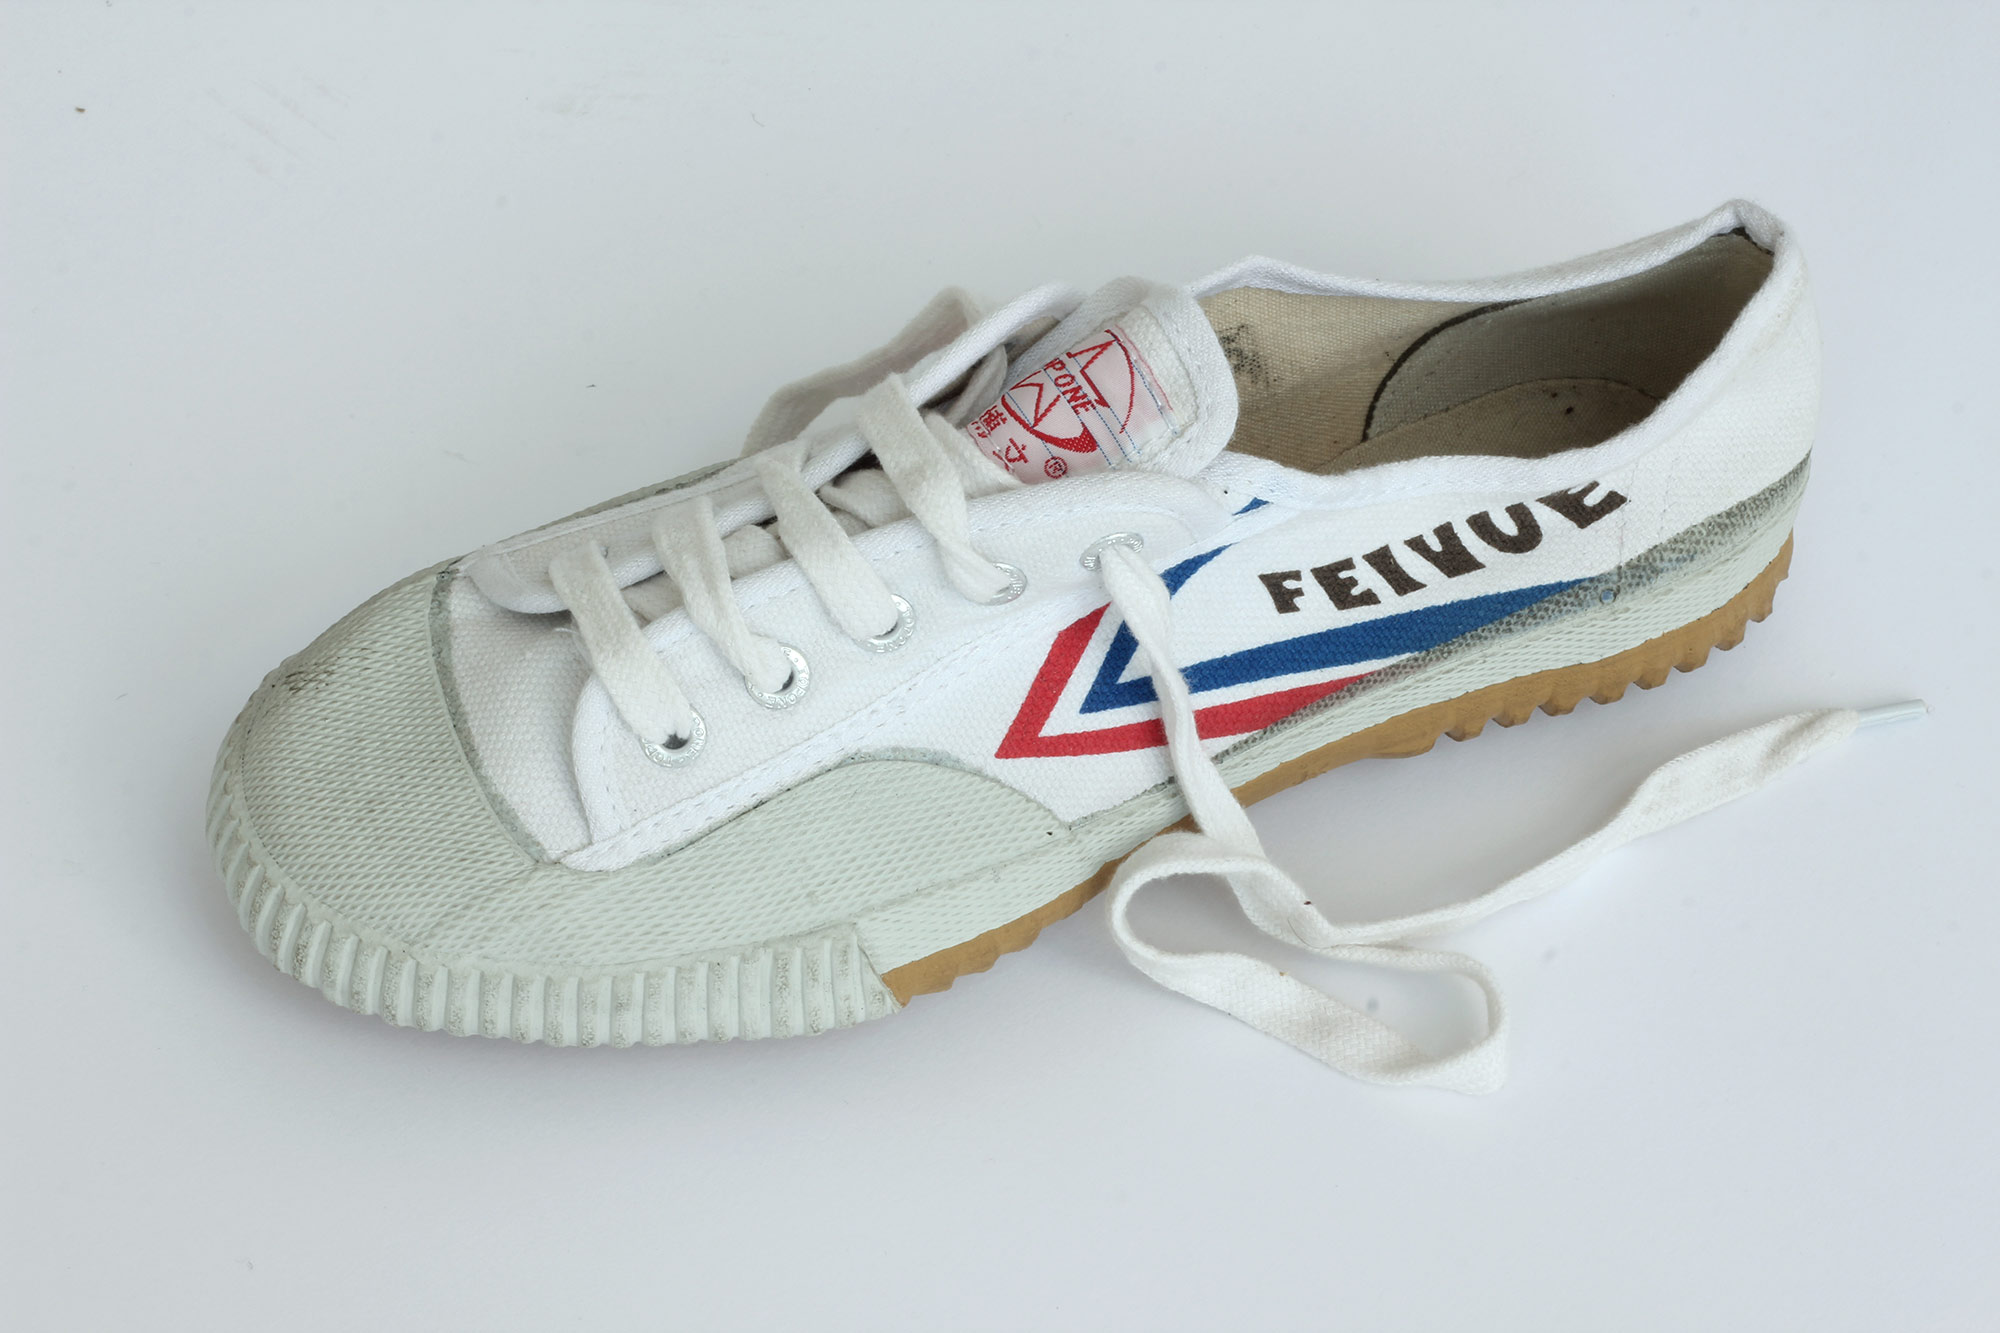 The original Feiyue shoe, no longer produced since the Chinese Top One company went bankrupt in 2008